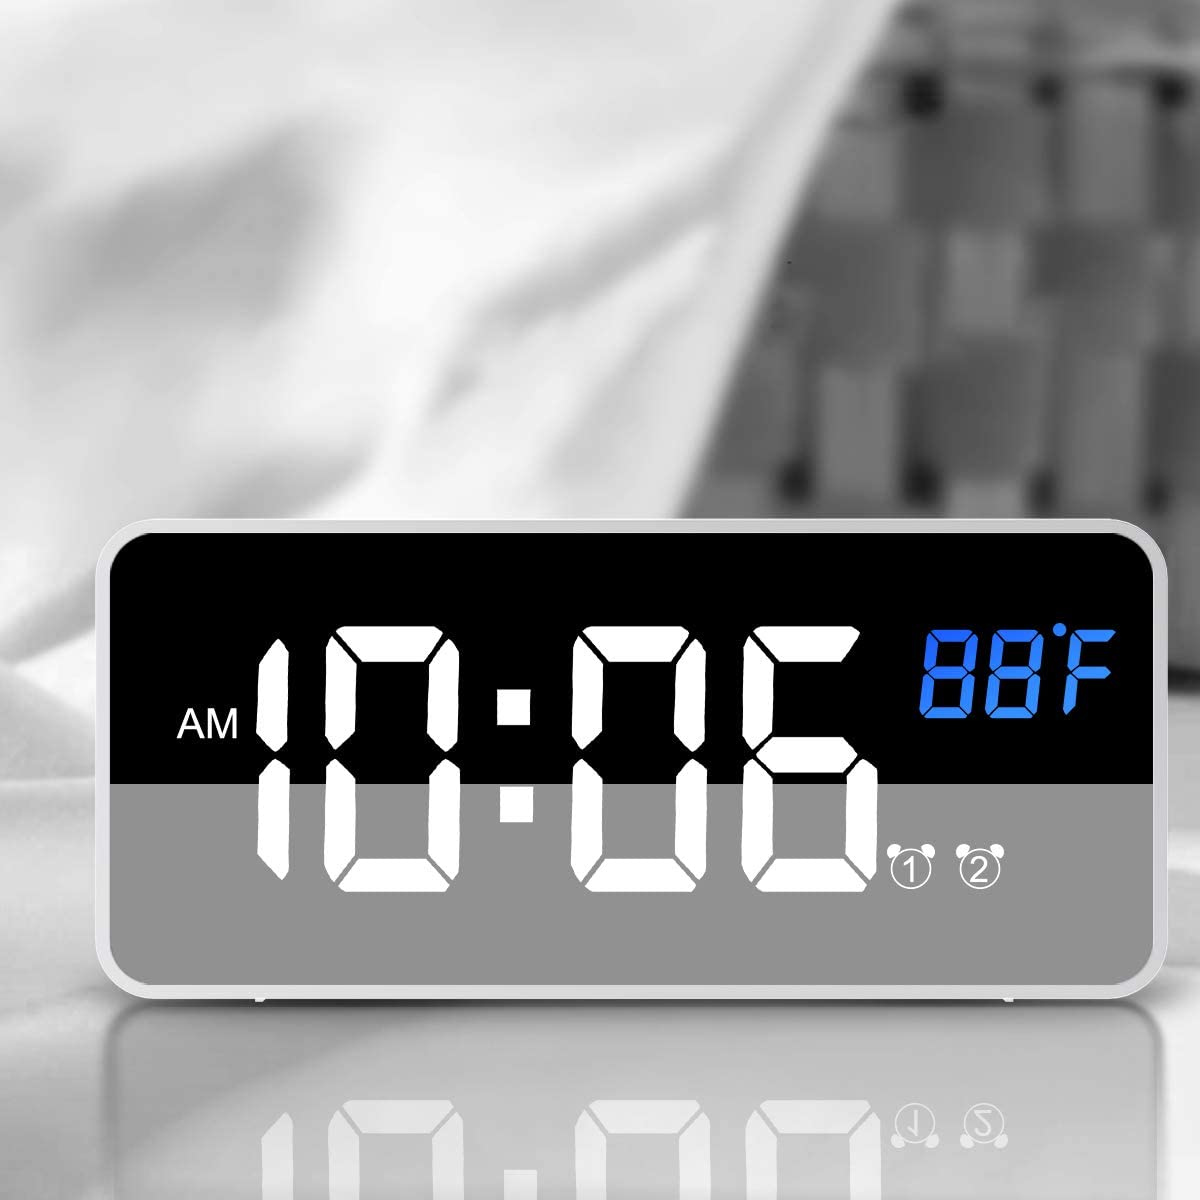 Nicewell Traveling Digital Alarm Clock Mini Size Silver with USB Charging LED Time or Temperature Display, Snooze, Adjustable Brightness, Simple Operation, 12/24Hr